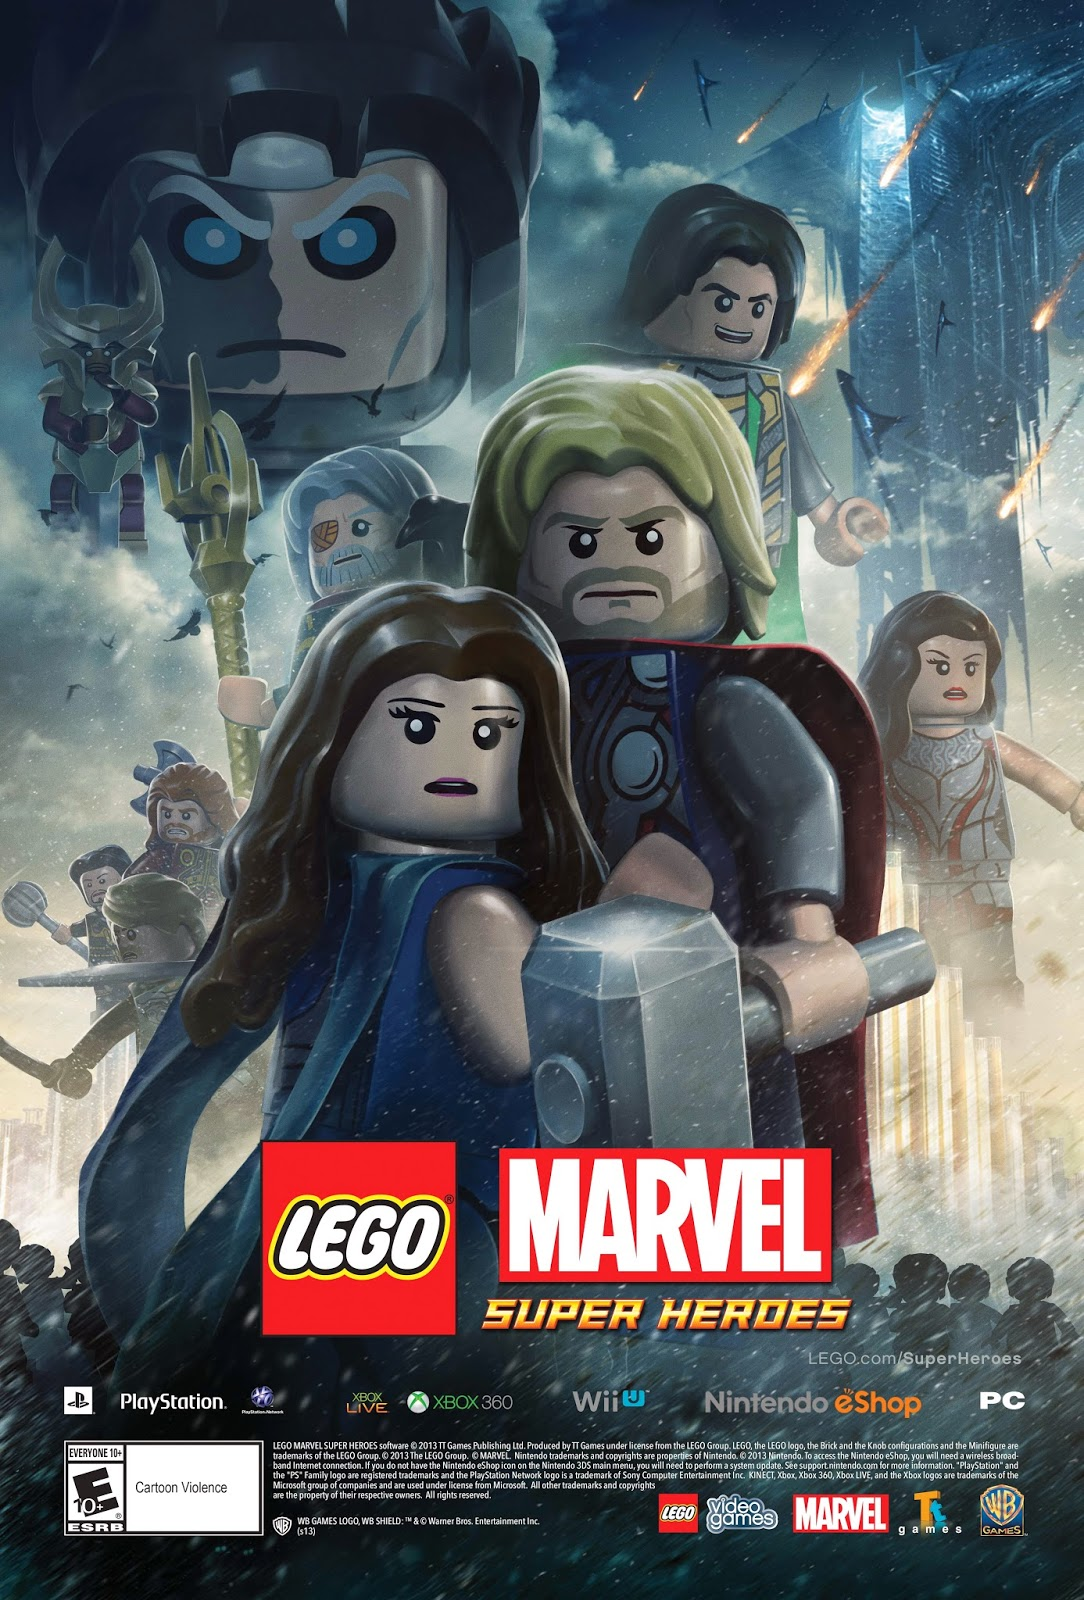 collecting toyz lego thor the dark world movie poster lego marvel super heroes at nycc. Black Bedroom Furniture Sets. Home Design Ideas